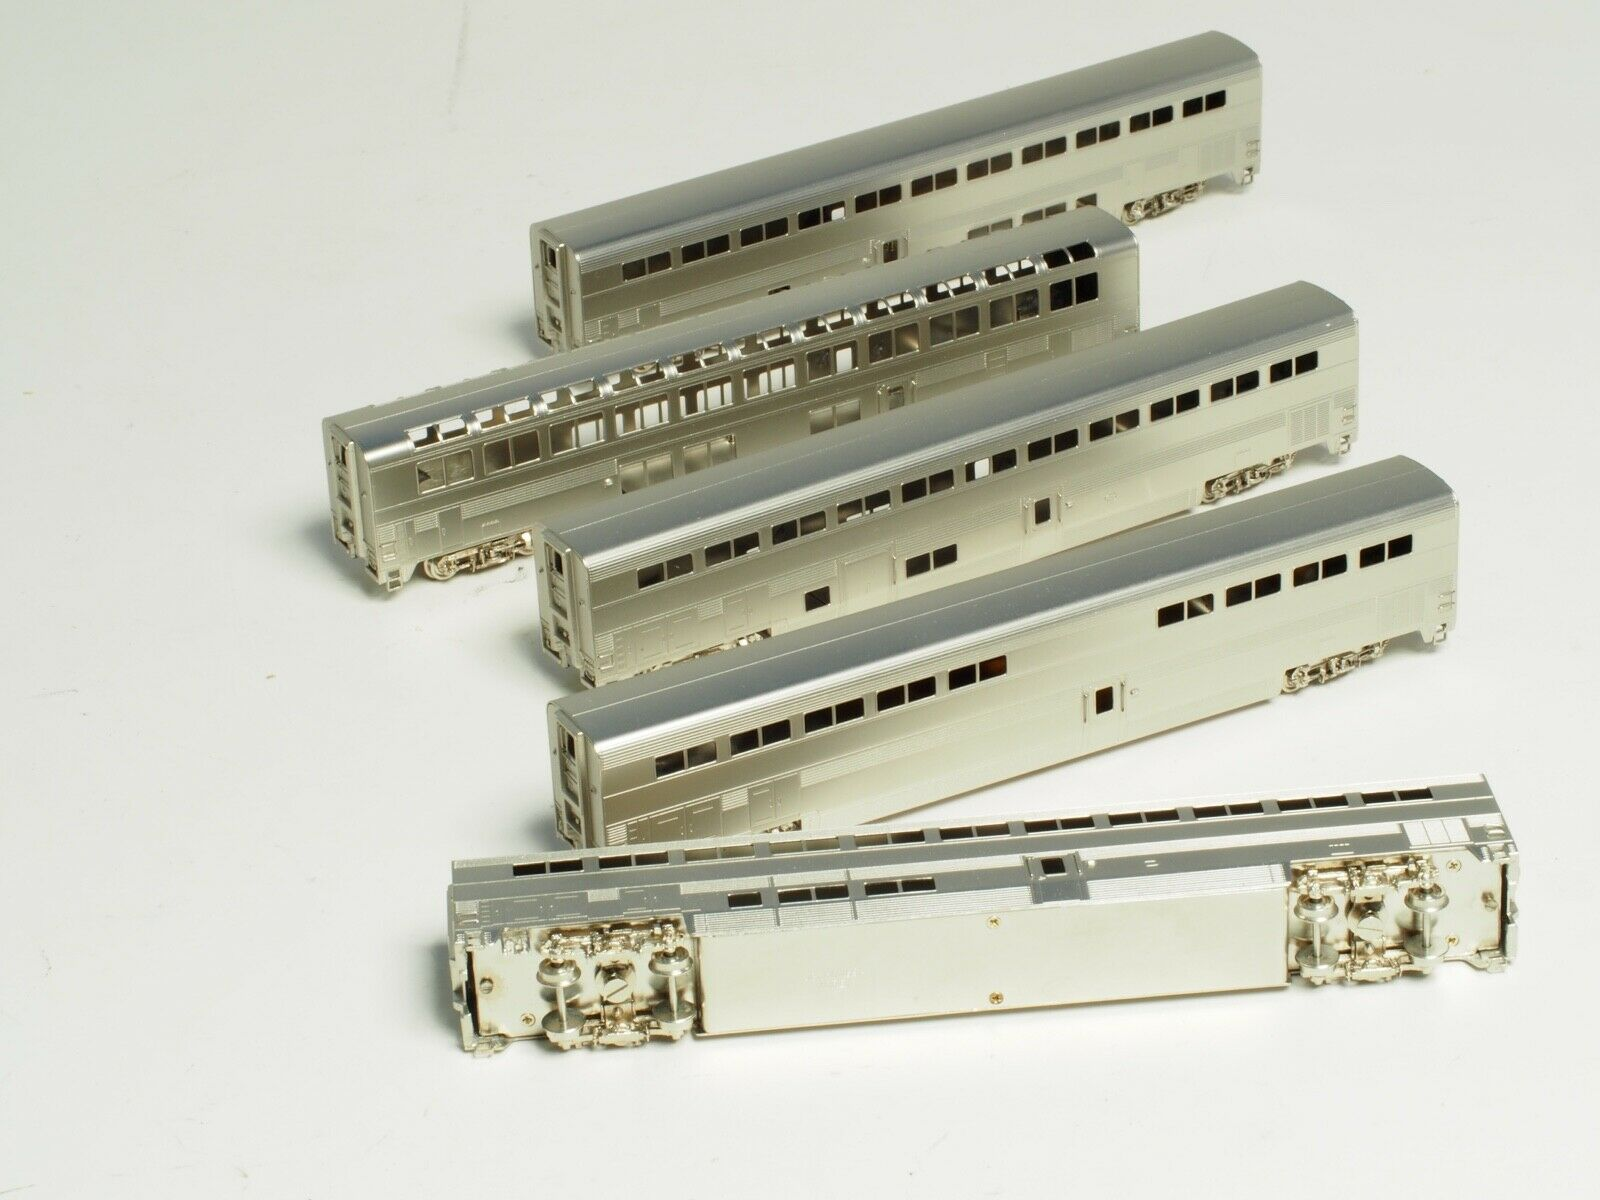 N SCALE BRASS BRASS BRASS AMTRAK SUPERLINERS 5-CAR SET PACIFIC FAST MAIL USA 03dc6f